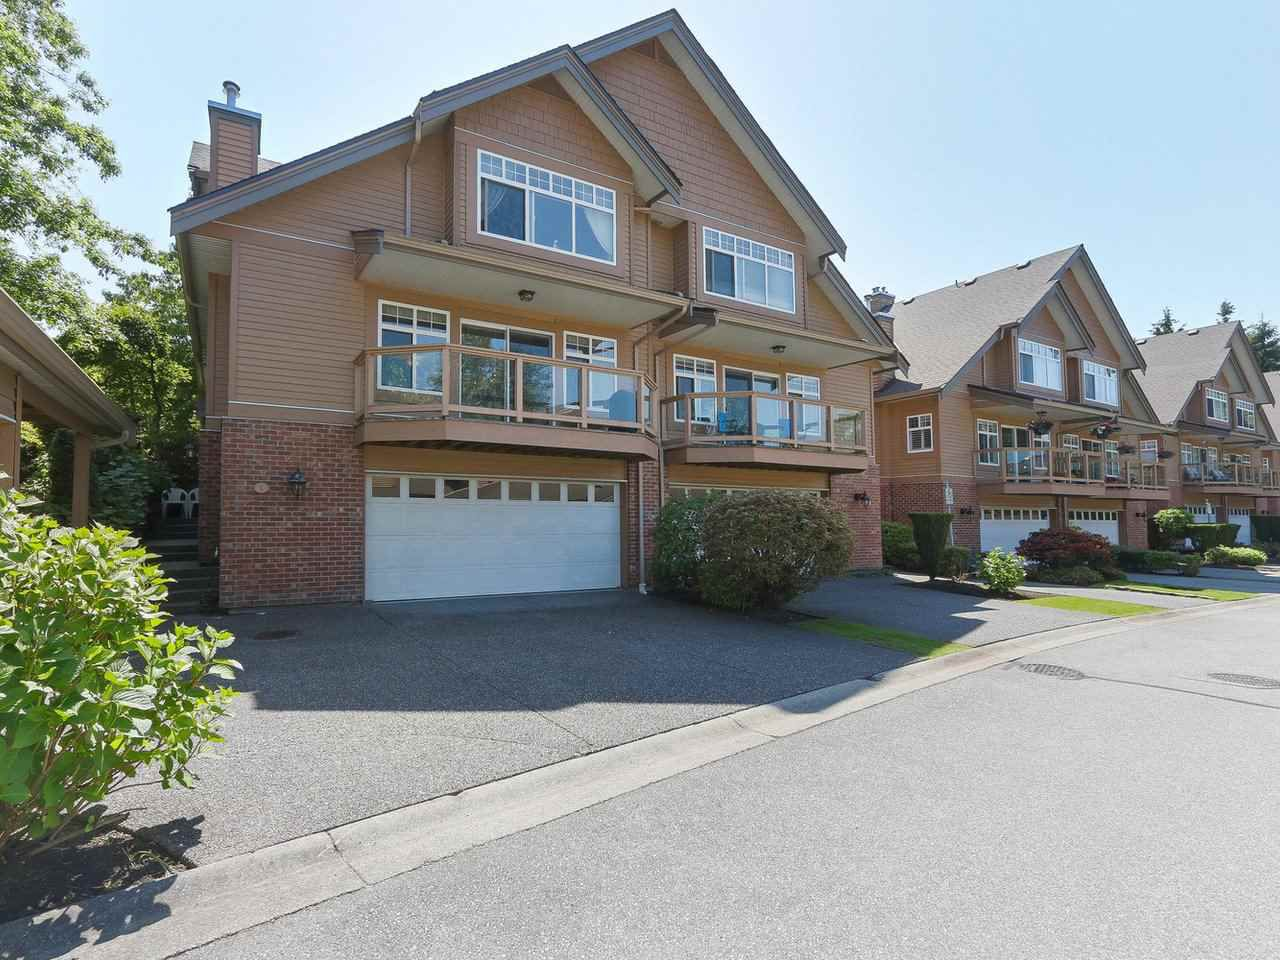 """Main Photo: 1 5201 OAKMOUNT Crescent in Burnaby: Oaklands Townhouse for sale in """"Hartlands at Deer Lake"""" (Burnaby South)  : MLS®# R2378395"""